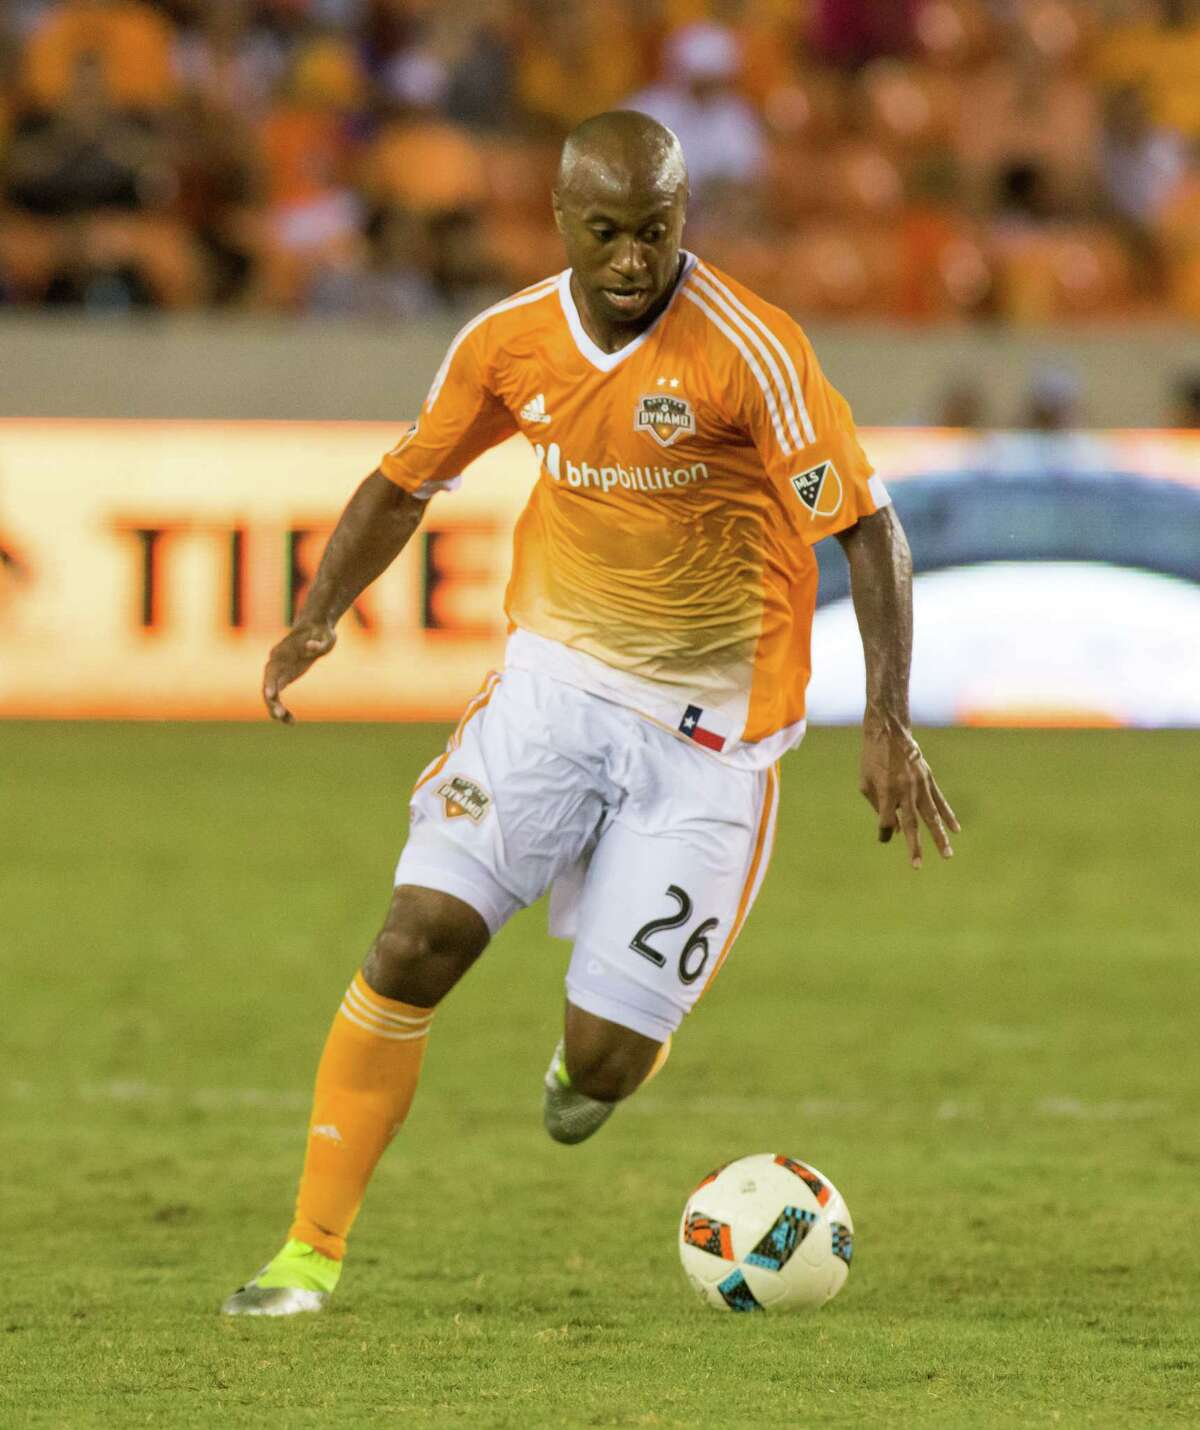 Houston Dynamo midfielder Collen Warner (26) pushing the ball during the second half of action between the between the Houston Dynamo and the Philadelphia Union during an MLS soccer game at BBVA Compass, Saturday, July 02, 2016, in Houston. Houston Dynamo defeated Philadelphia Union 1-0. (Juan DeLeon/for the Houston Chronicle )